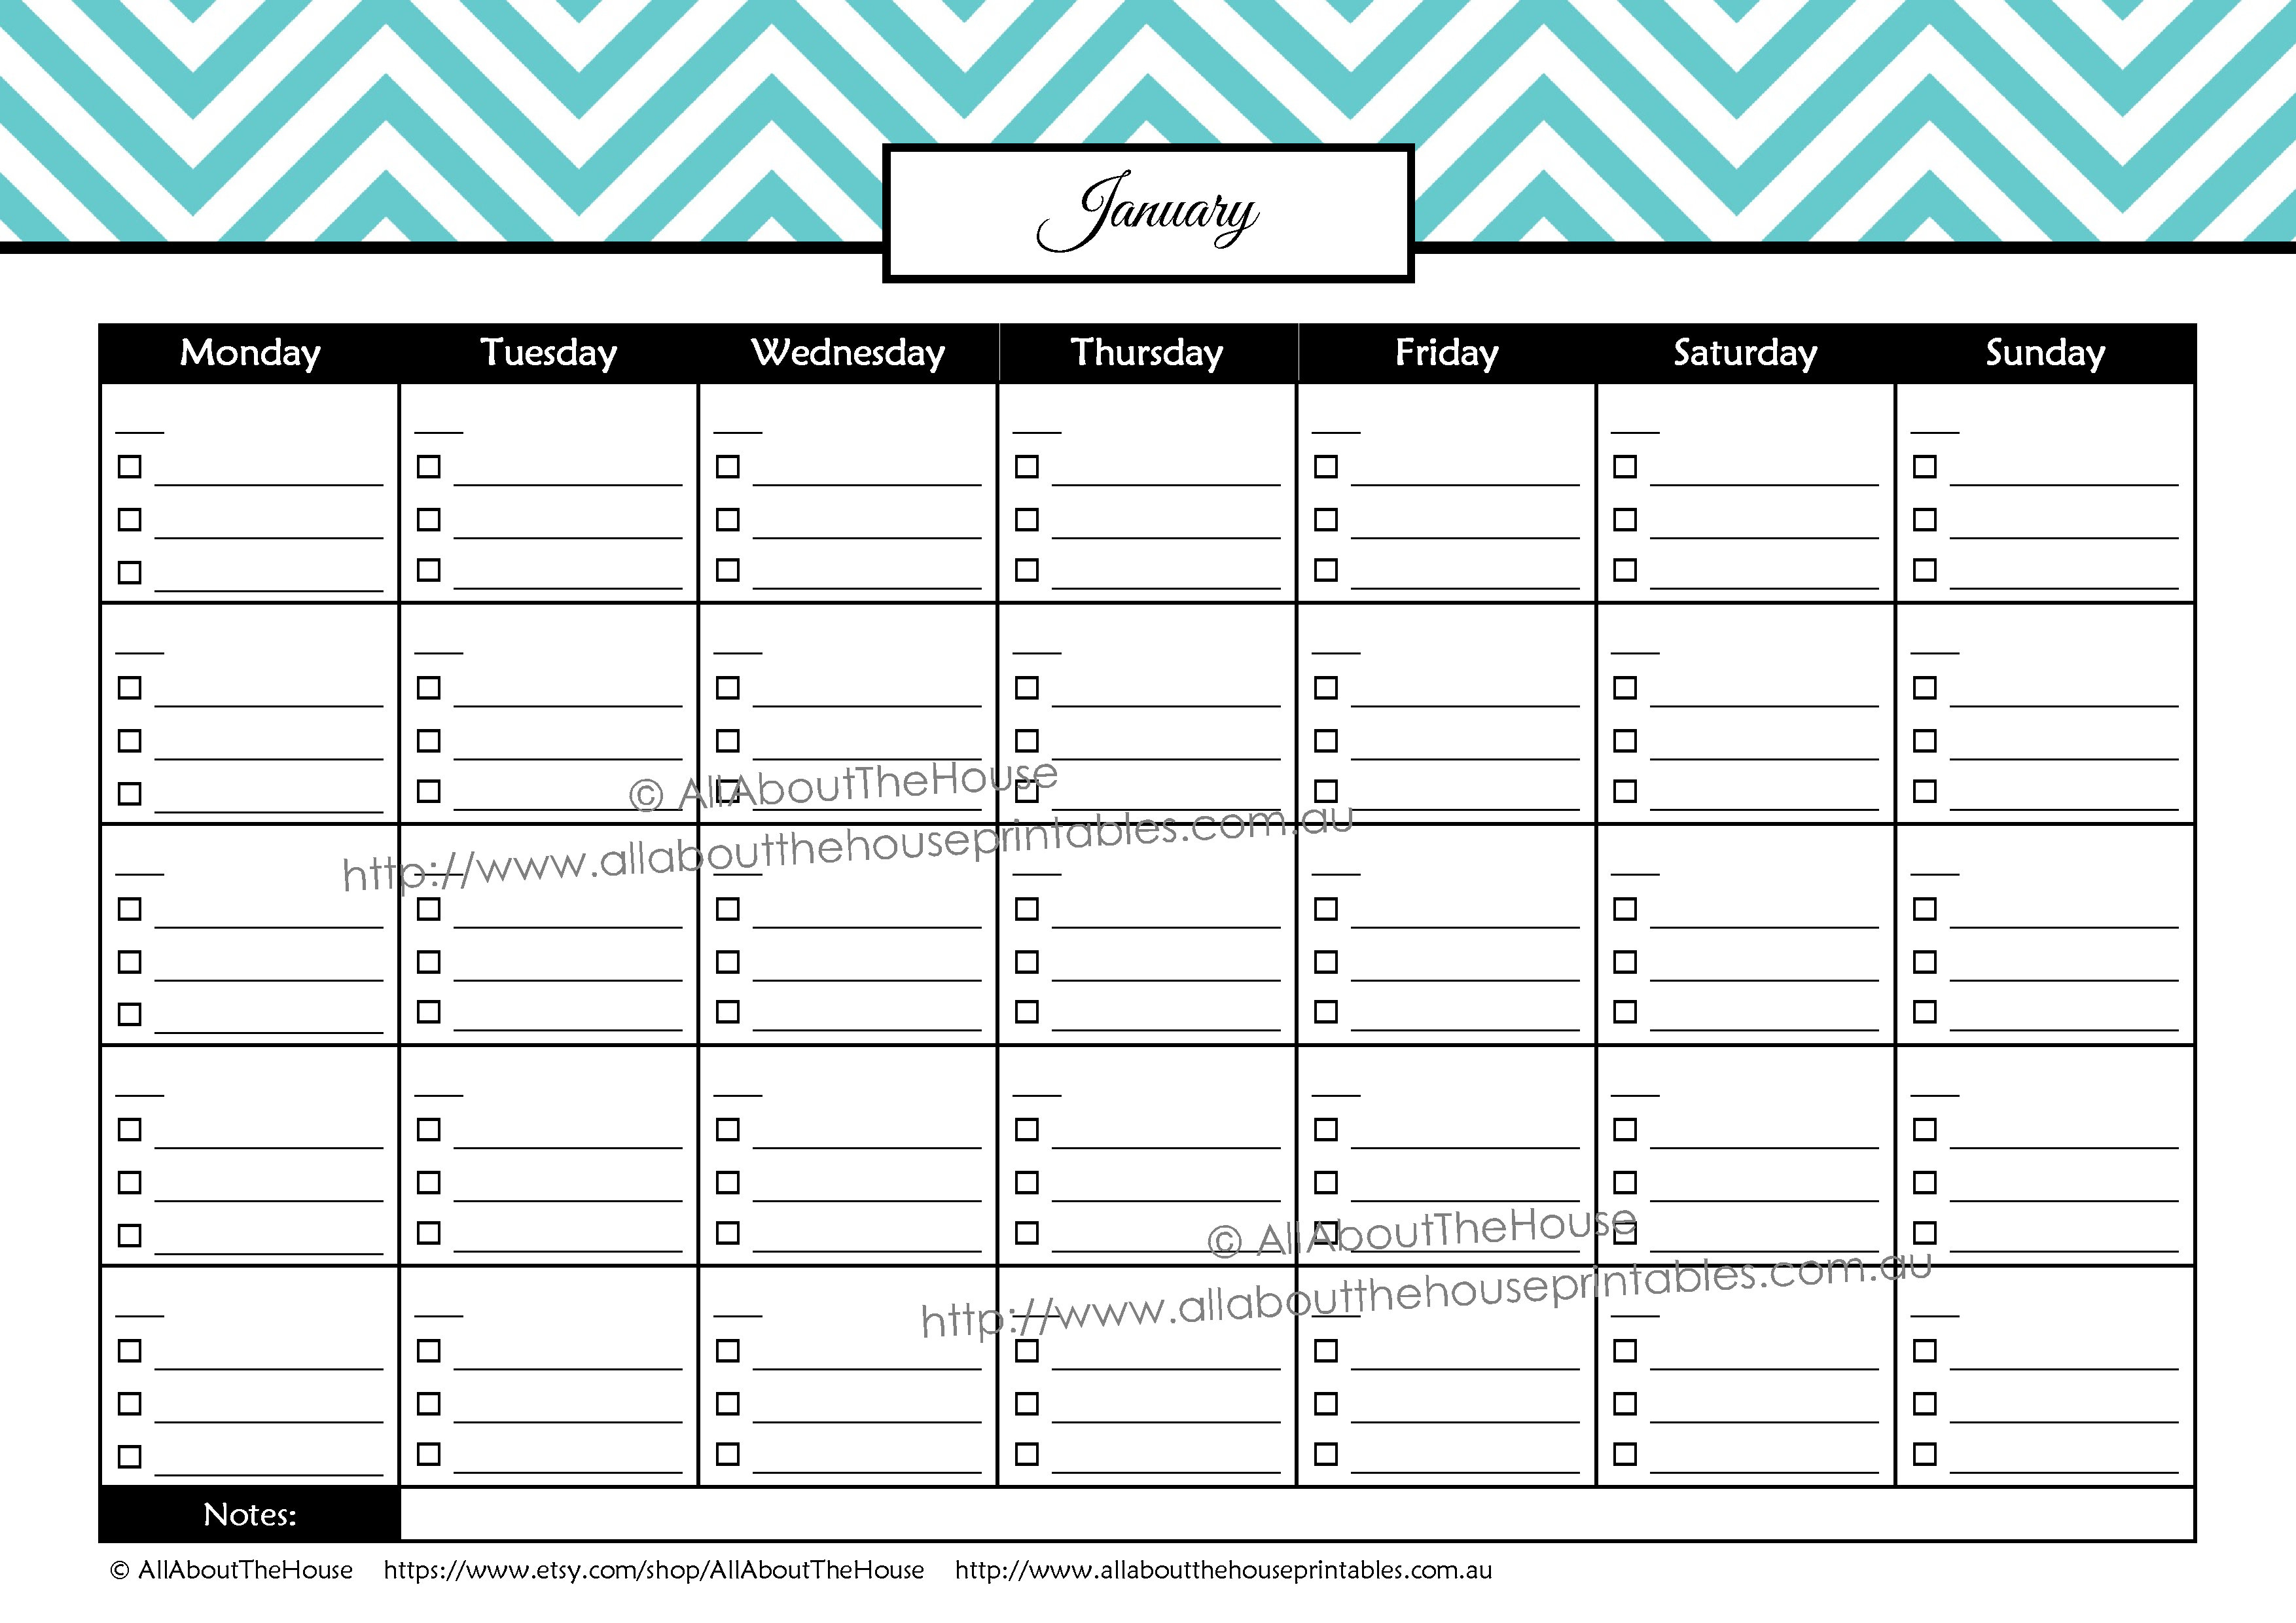 026 Template Ideas Paid Bill Payment Calendar Checklist in Printable Monthly Bill Chart